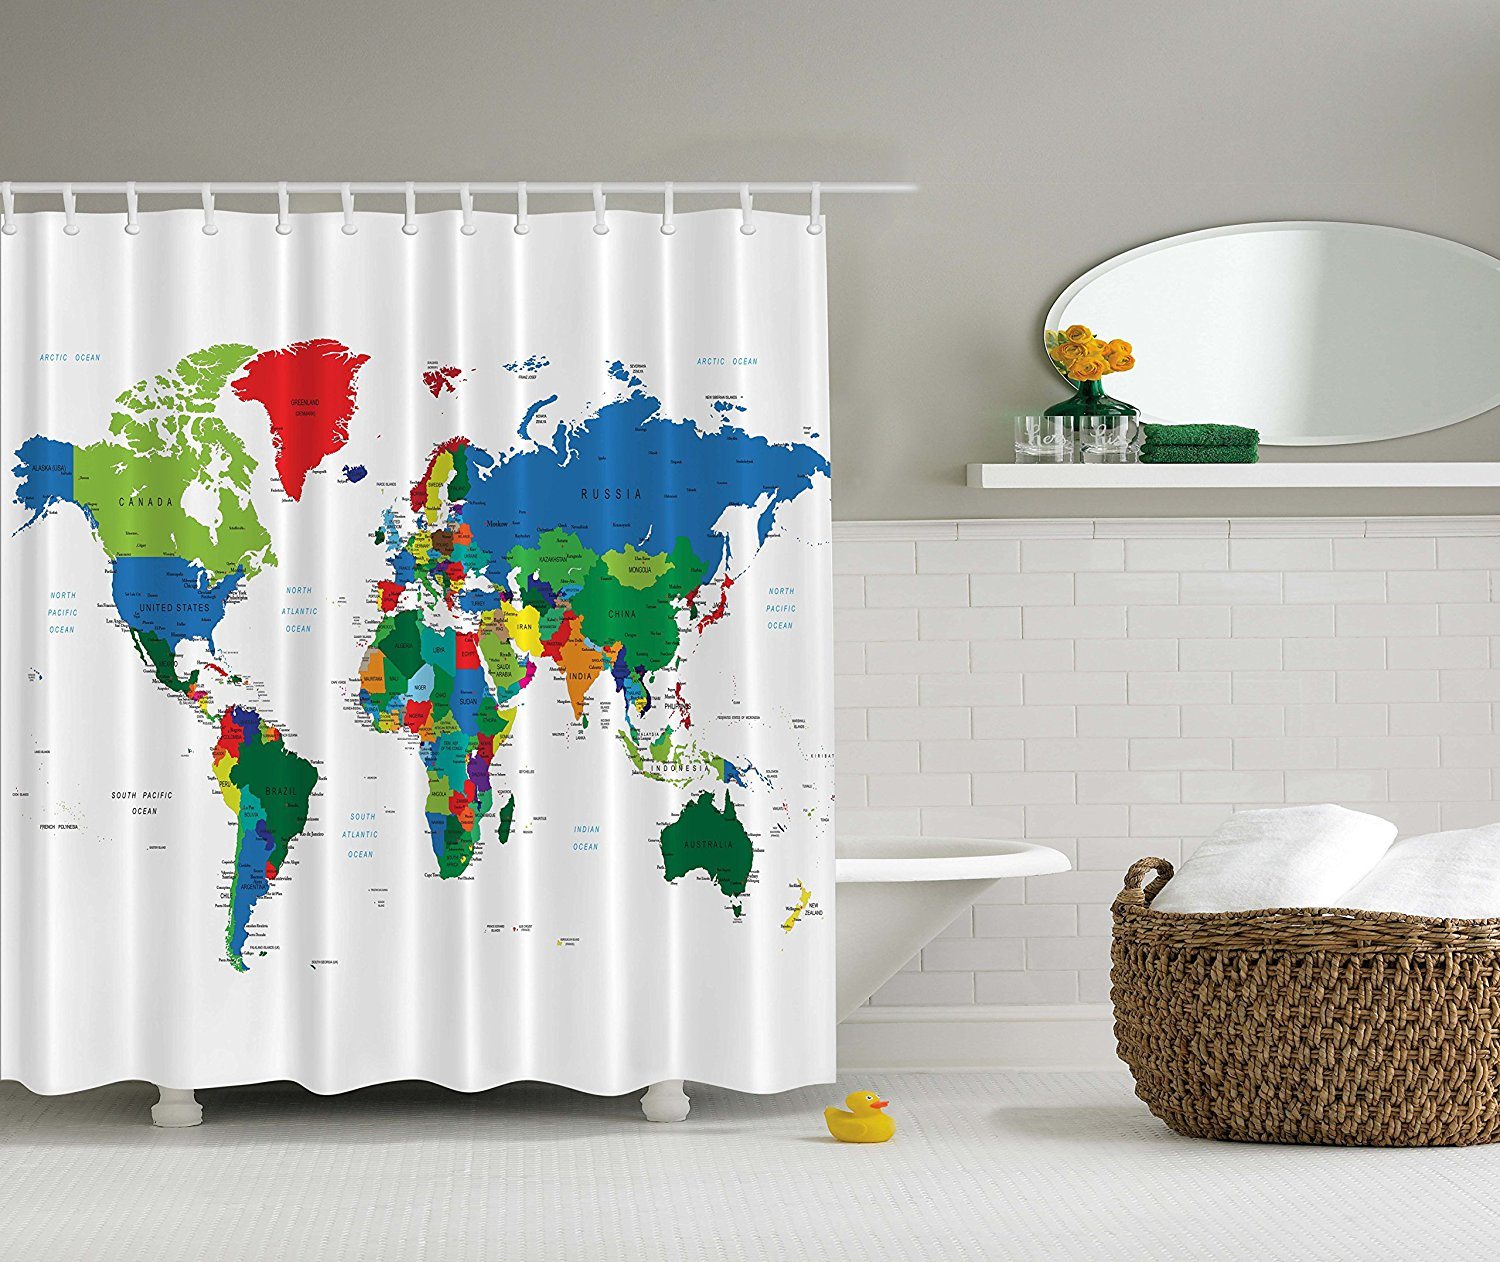 Memory home world map shower curtain novelty modern home - Bathroom shower curtains and accessories ...